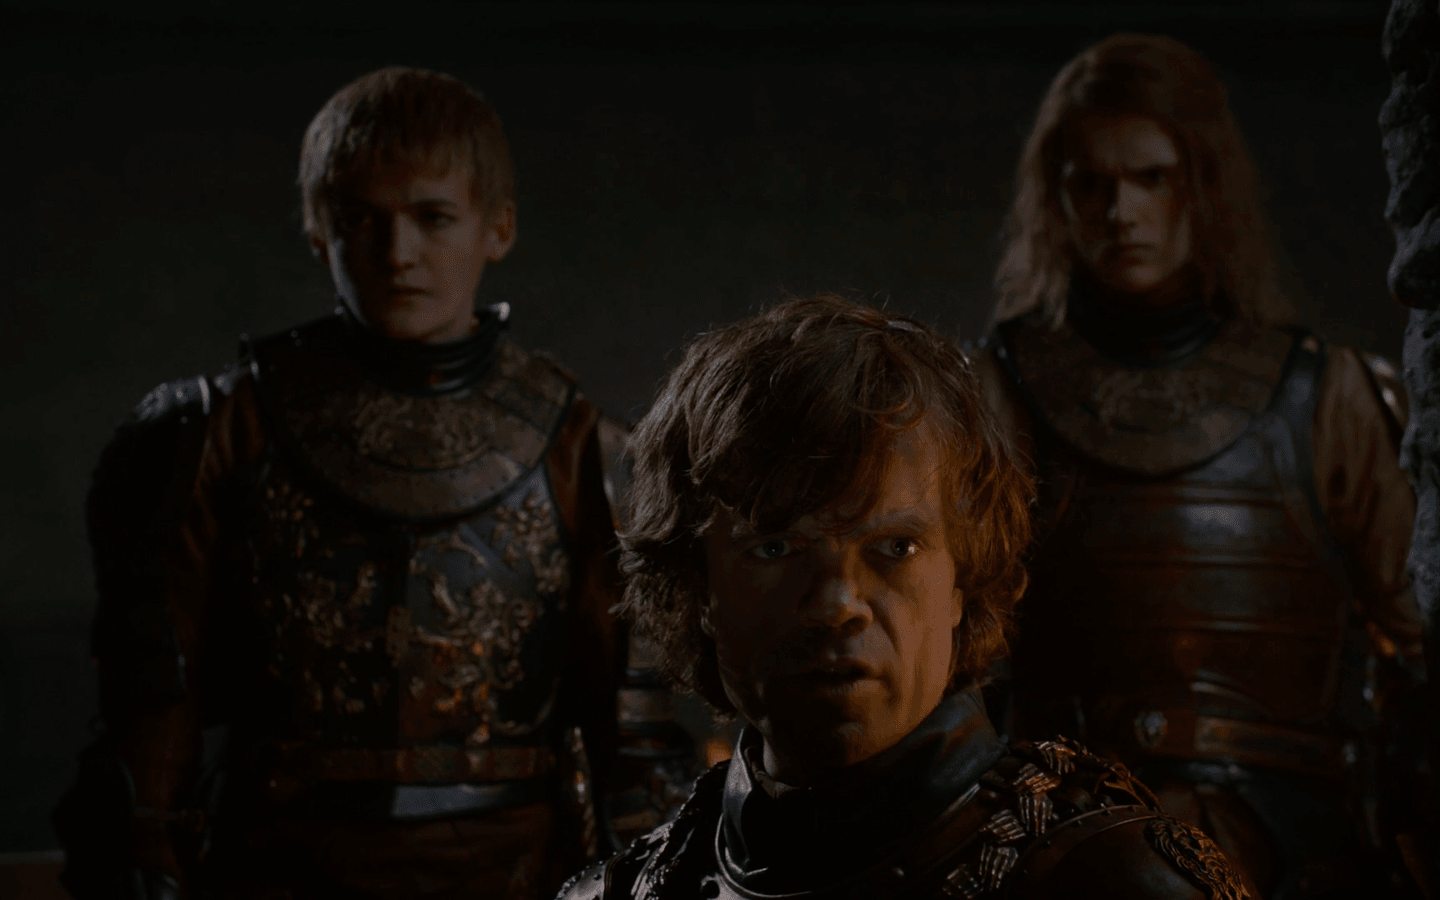 The Lannister army looking sharp for battle | HBO